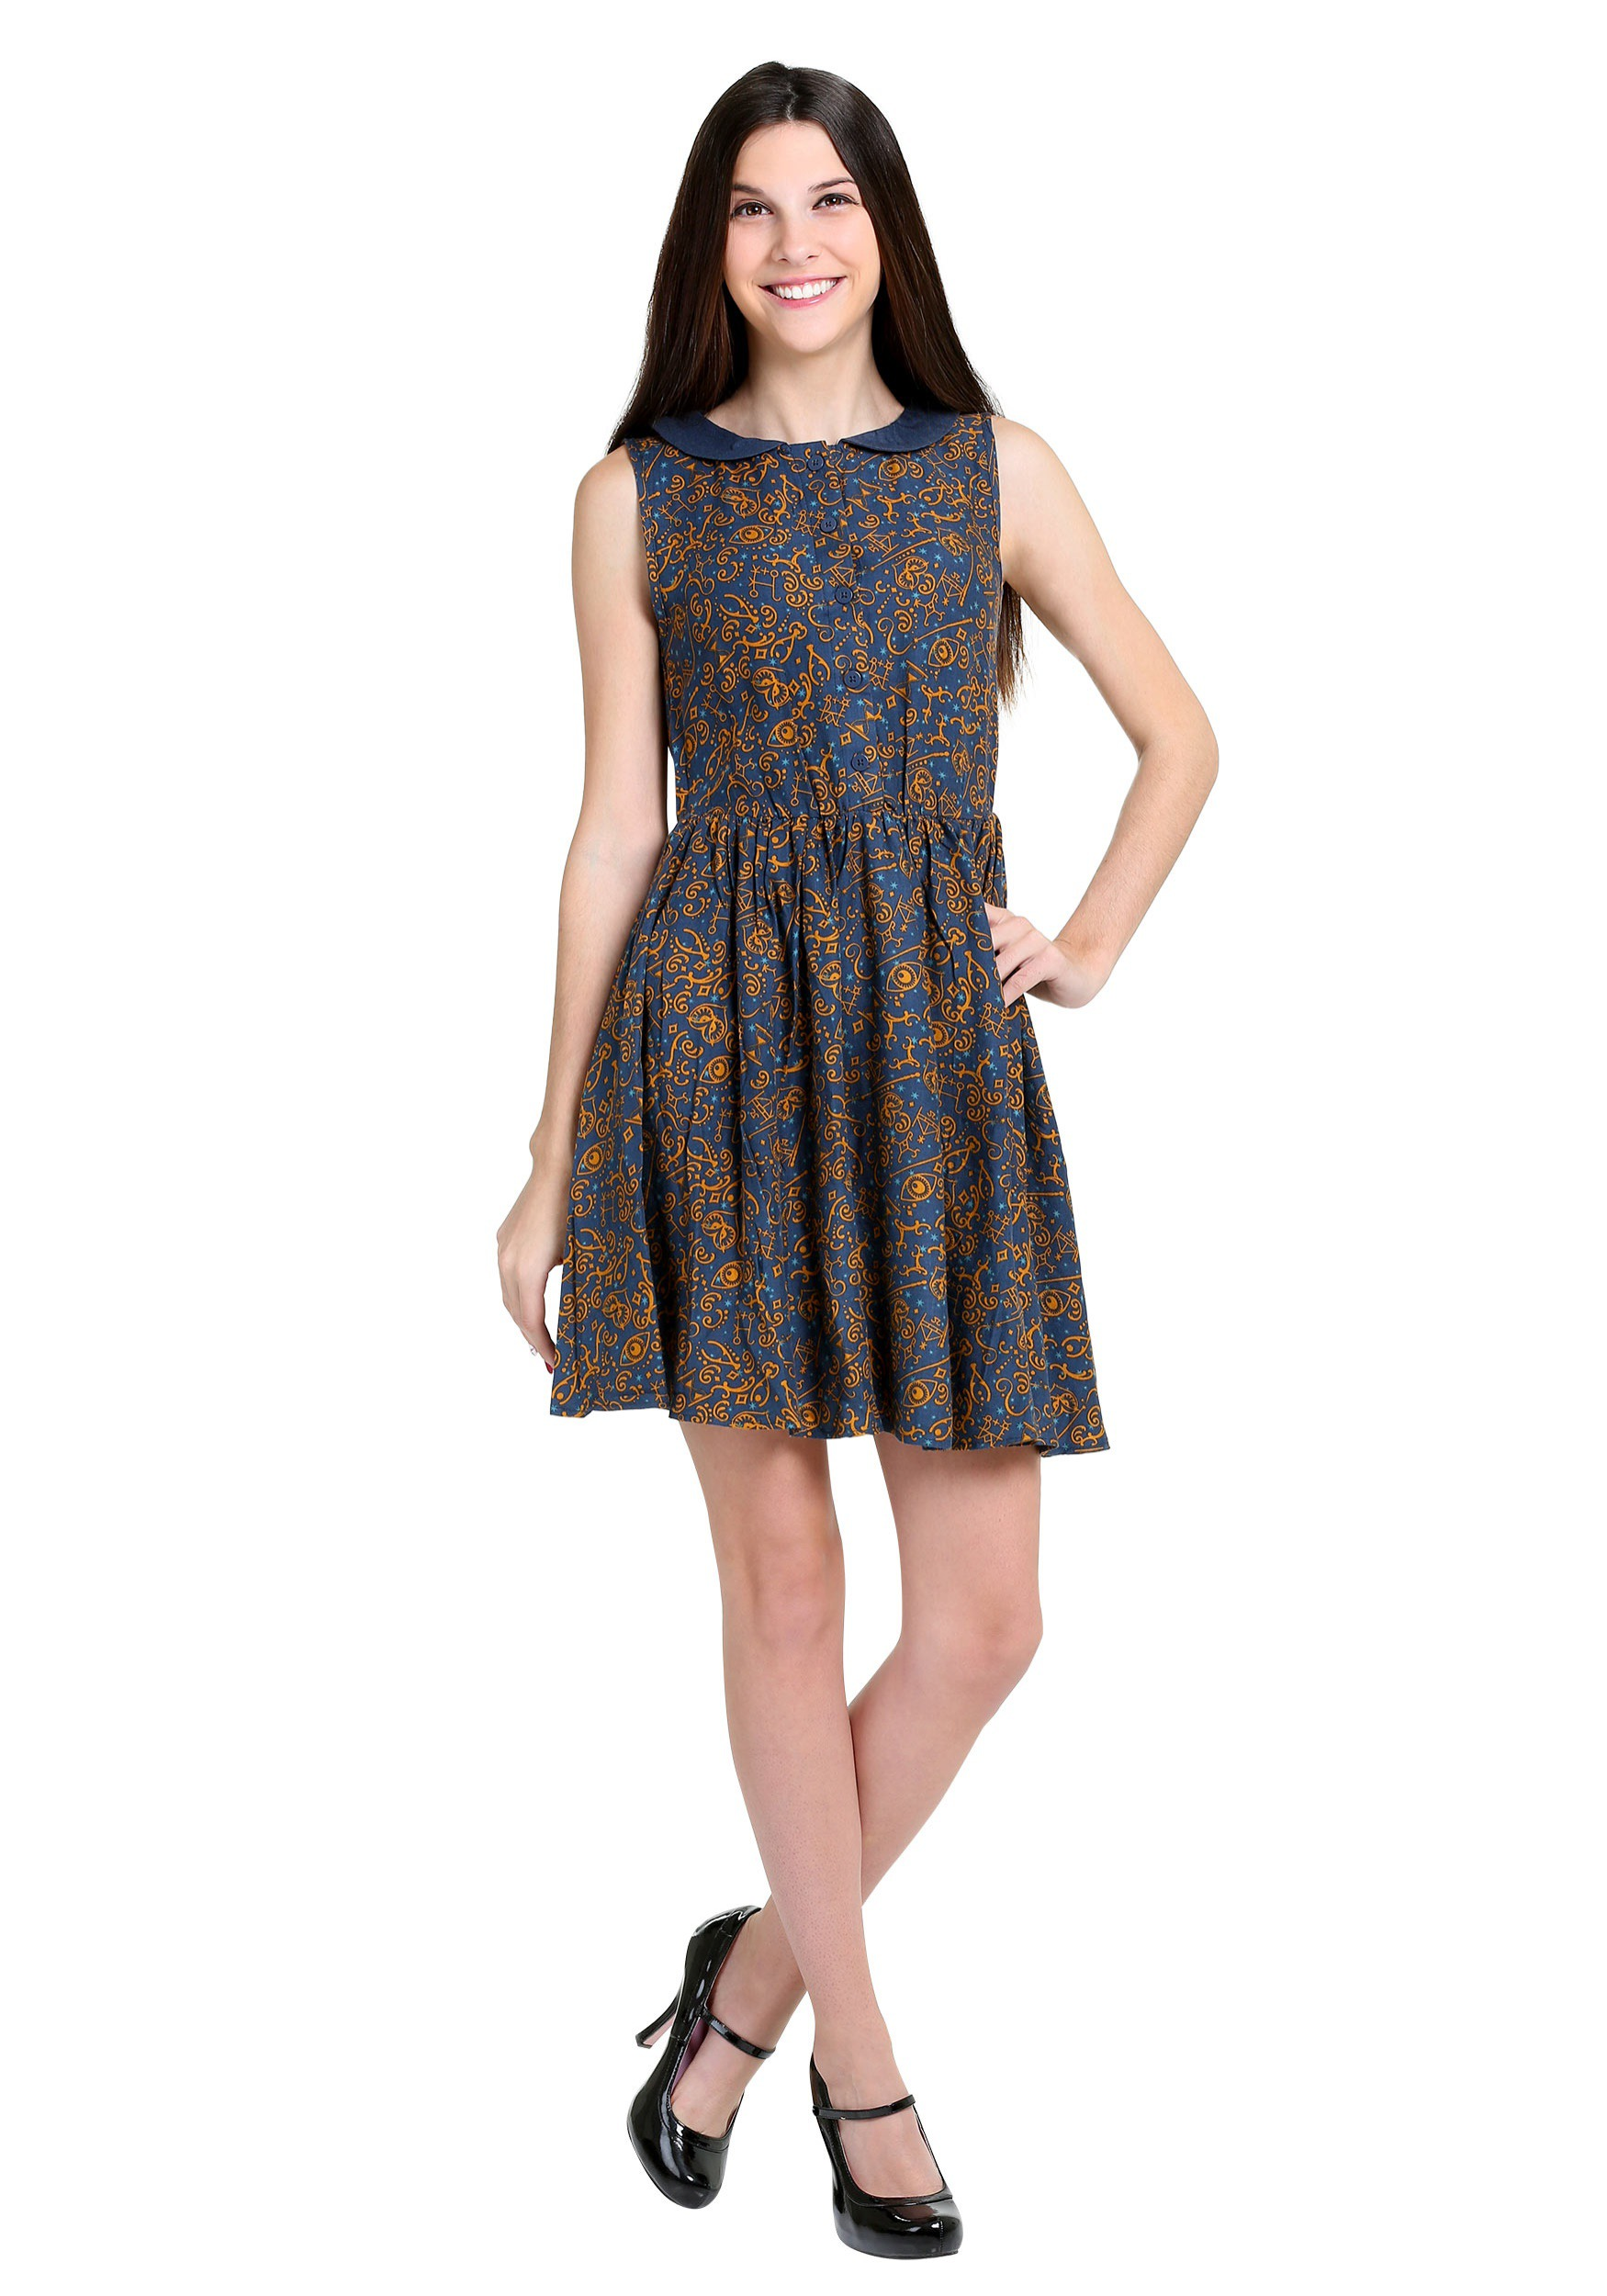 Fantastic Beasts and Where to Find Them Dress for Women